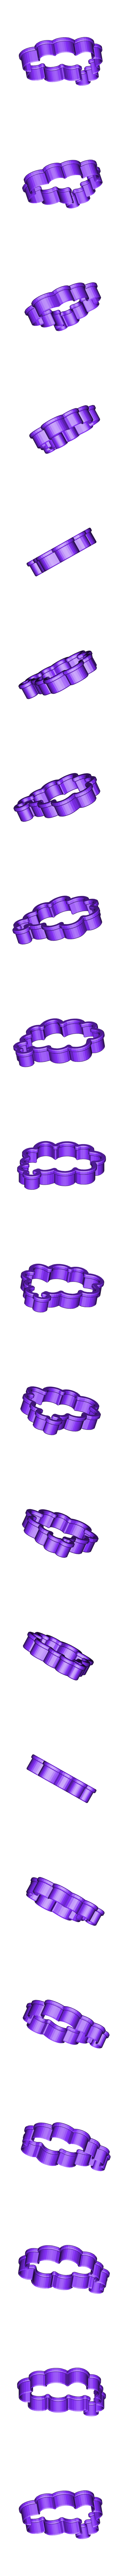 Word Bubble 4 Cookie Cutter.stl Download free STL file Word Bubble 4 Cookie Cutter • 3D printable template, 3DBuilder